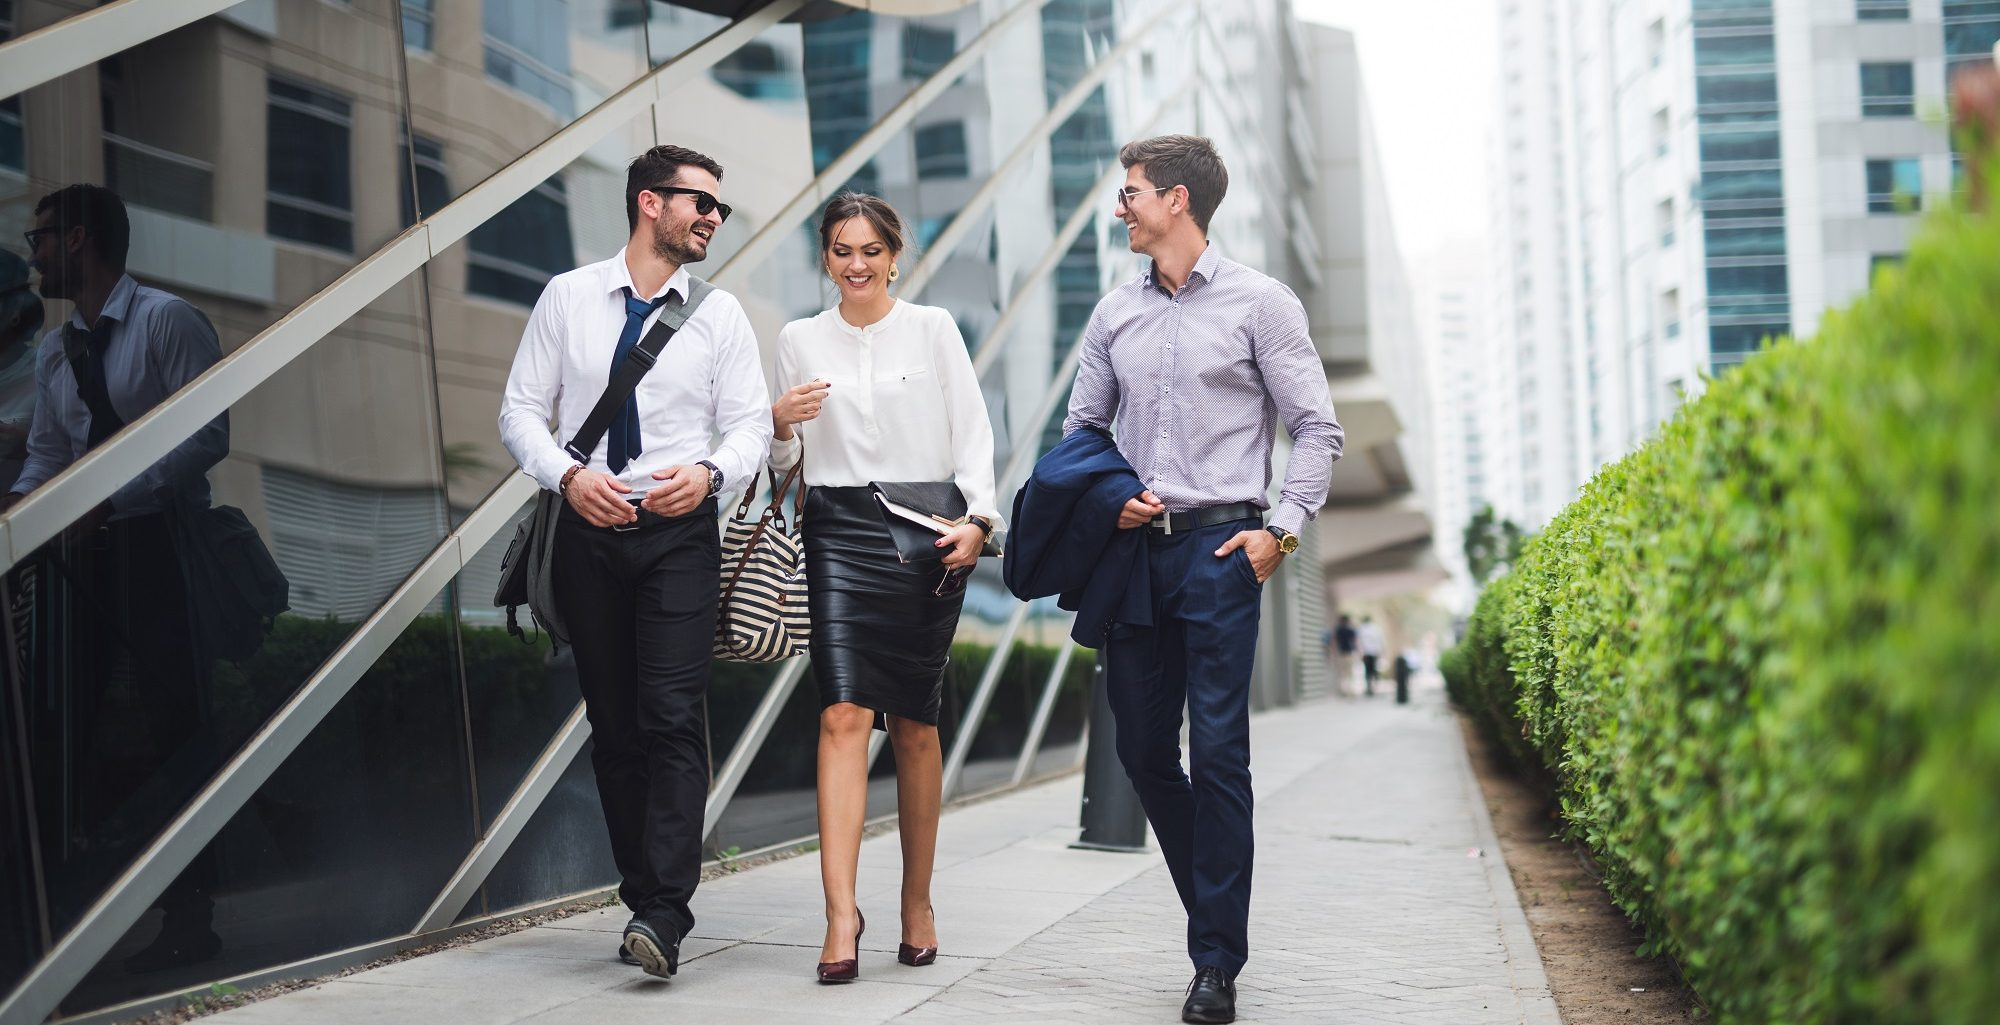 Business men and woman walking